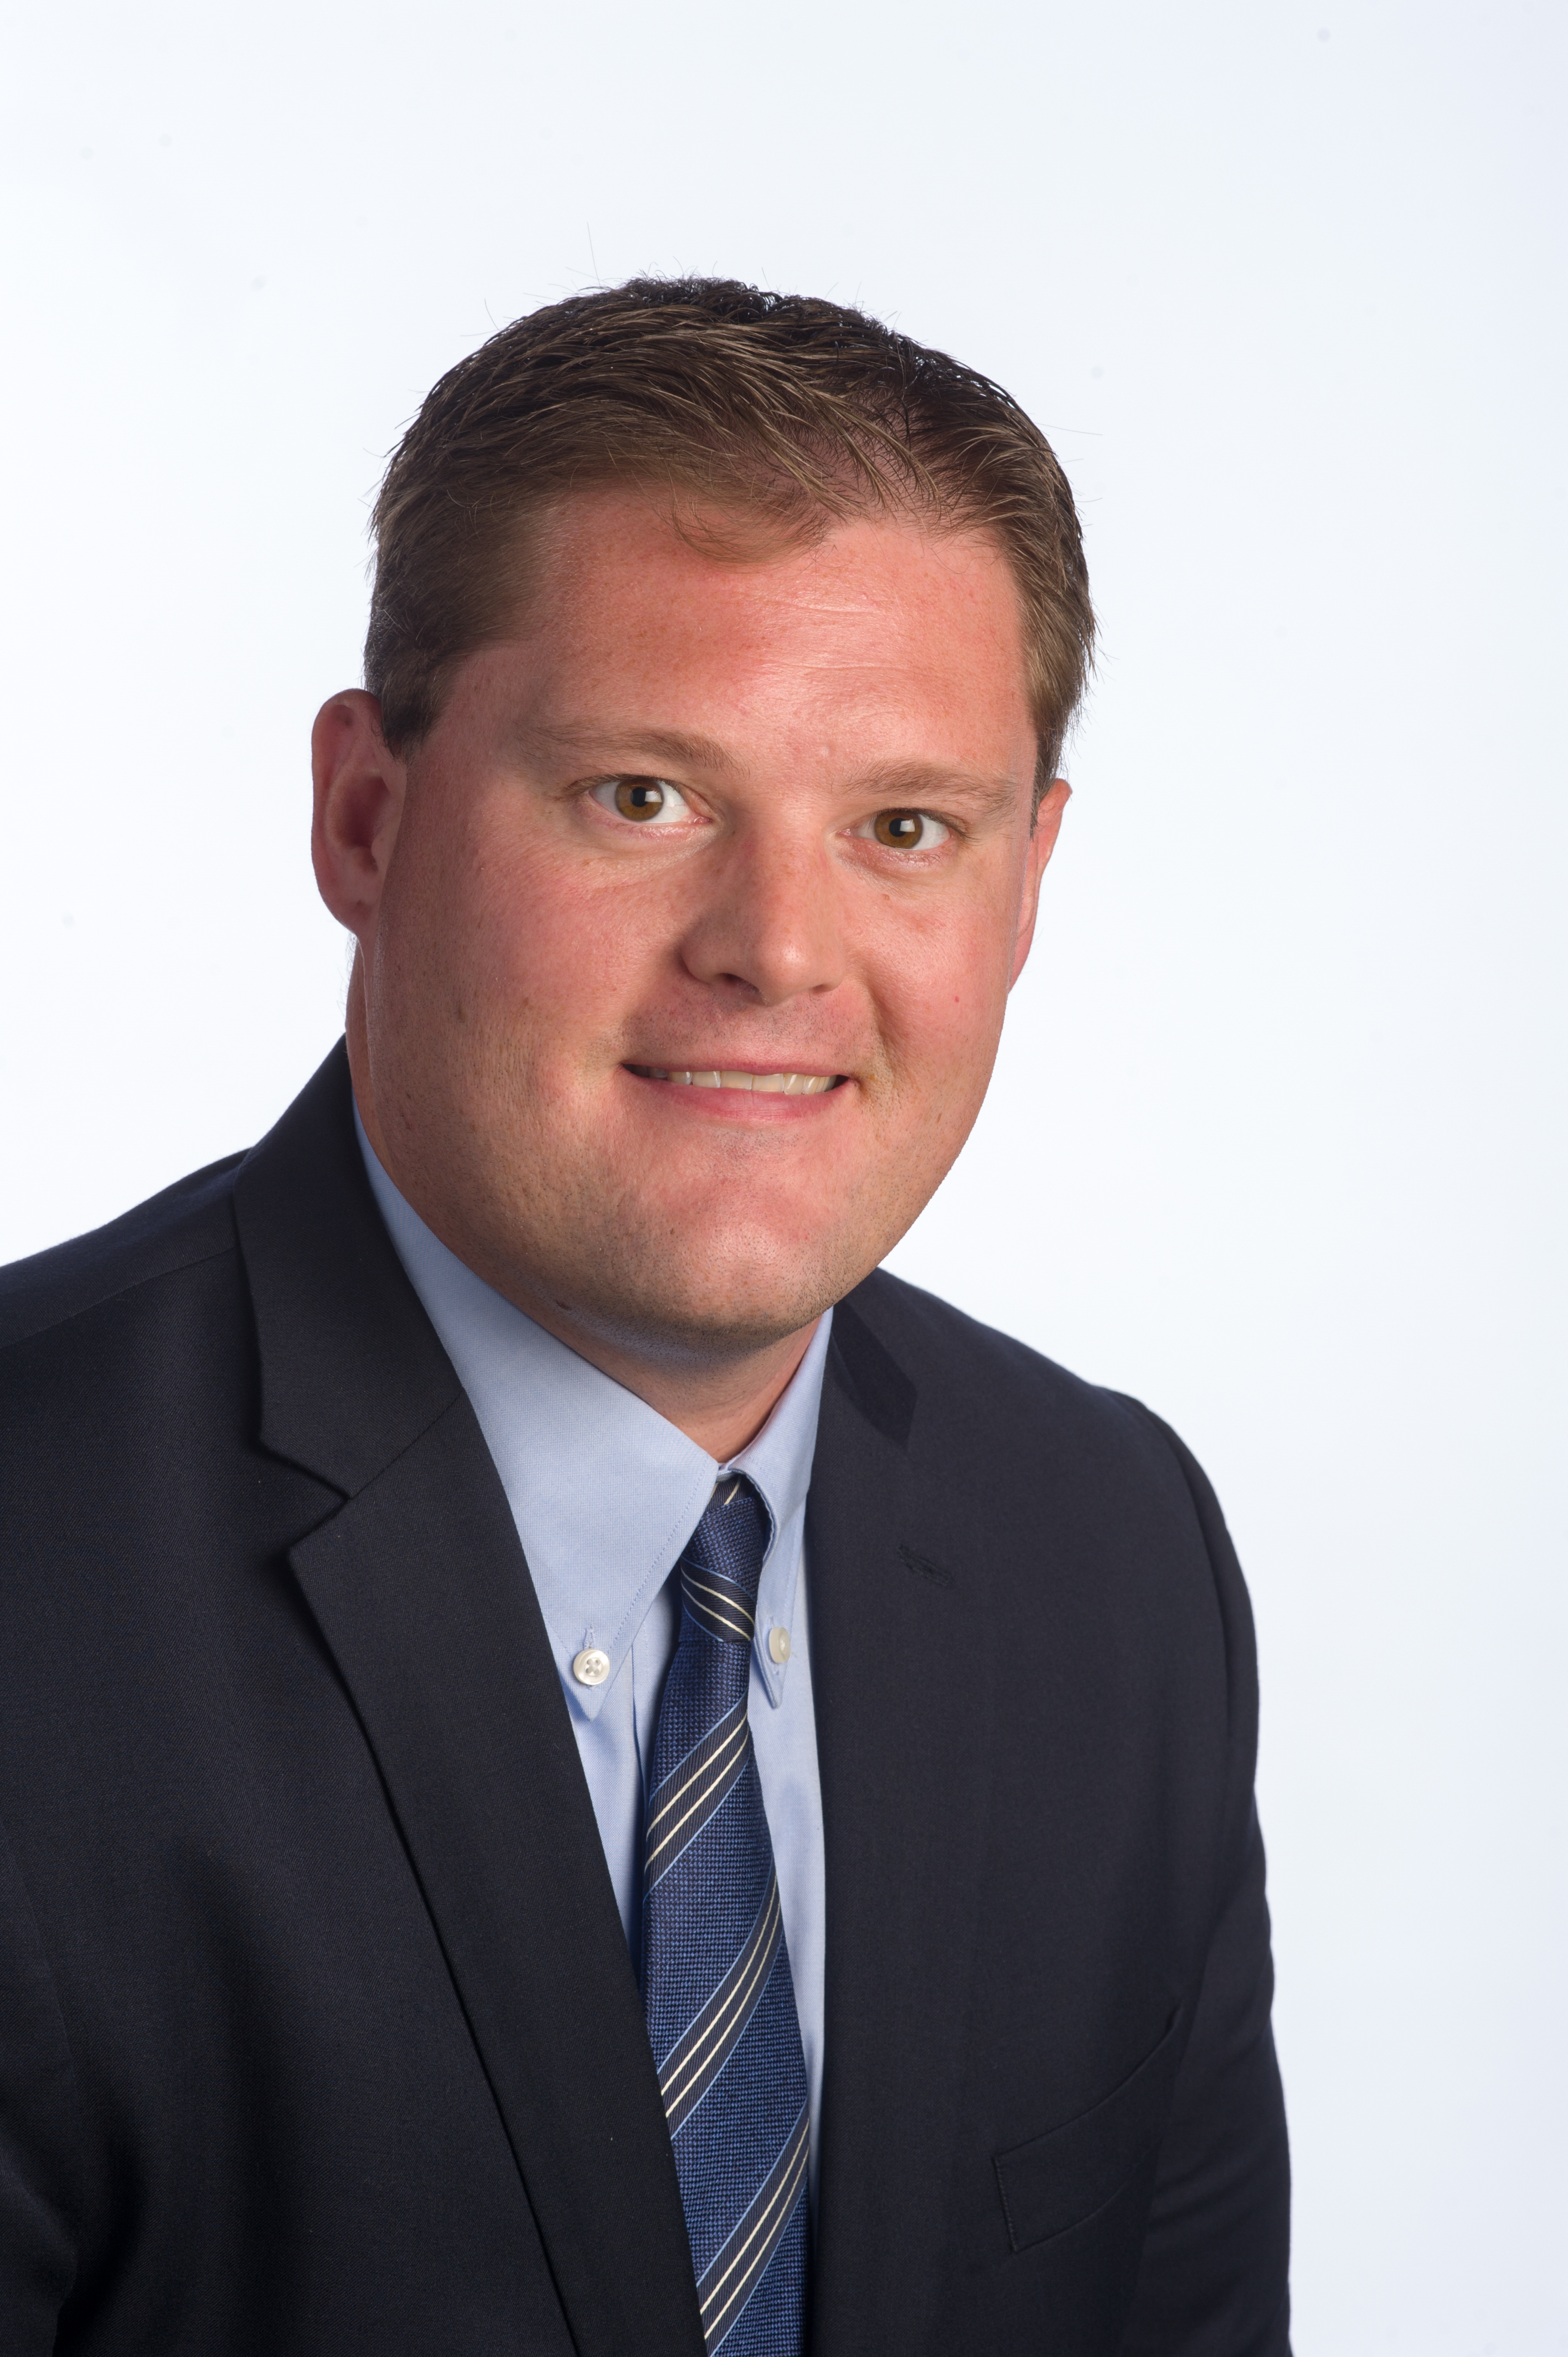 Papa John's International, Inc. announced Brandon Rhoten has joined the company as Global Chief Marketing Officer. (Photo: Business Wire)